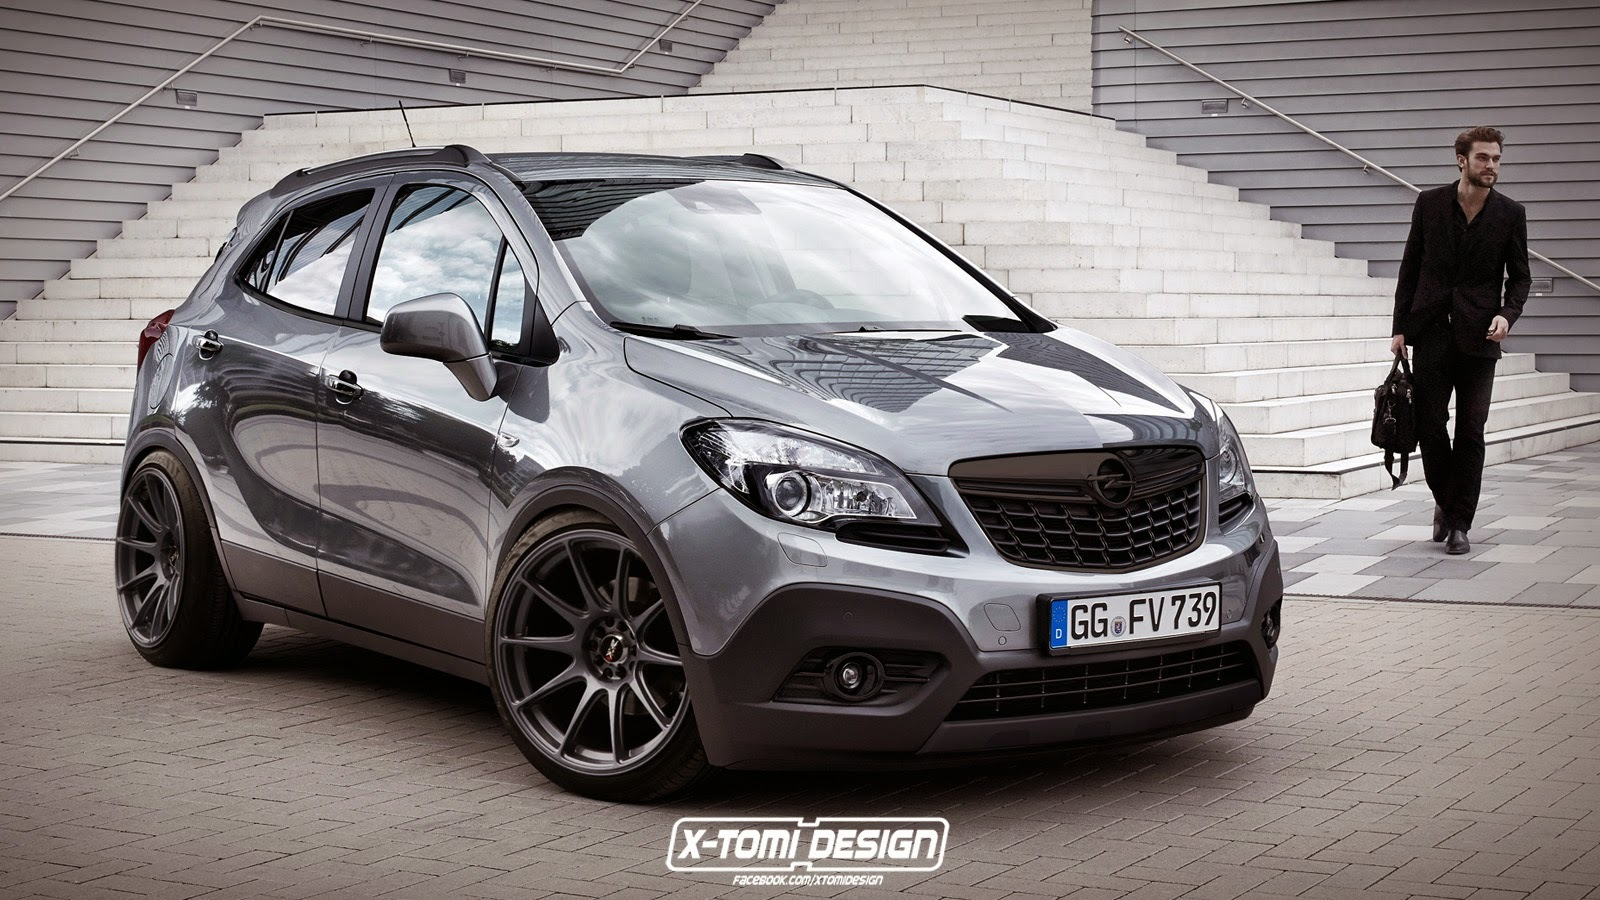 opel mokka design zeichnungen allgemeine themen opel mokka forum. Black Bedroom Furniture Sets. Home Design Ideas